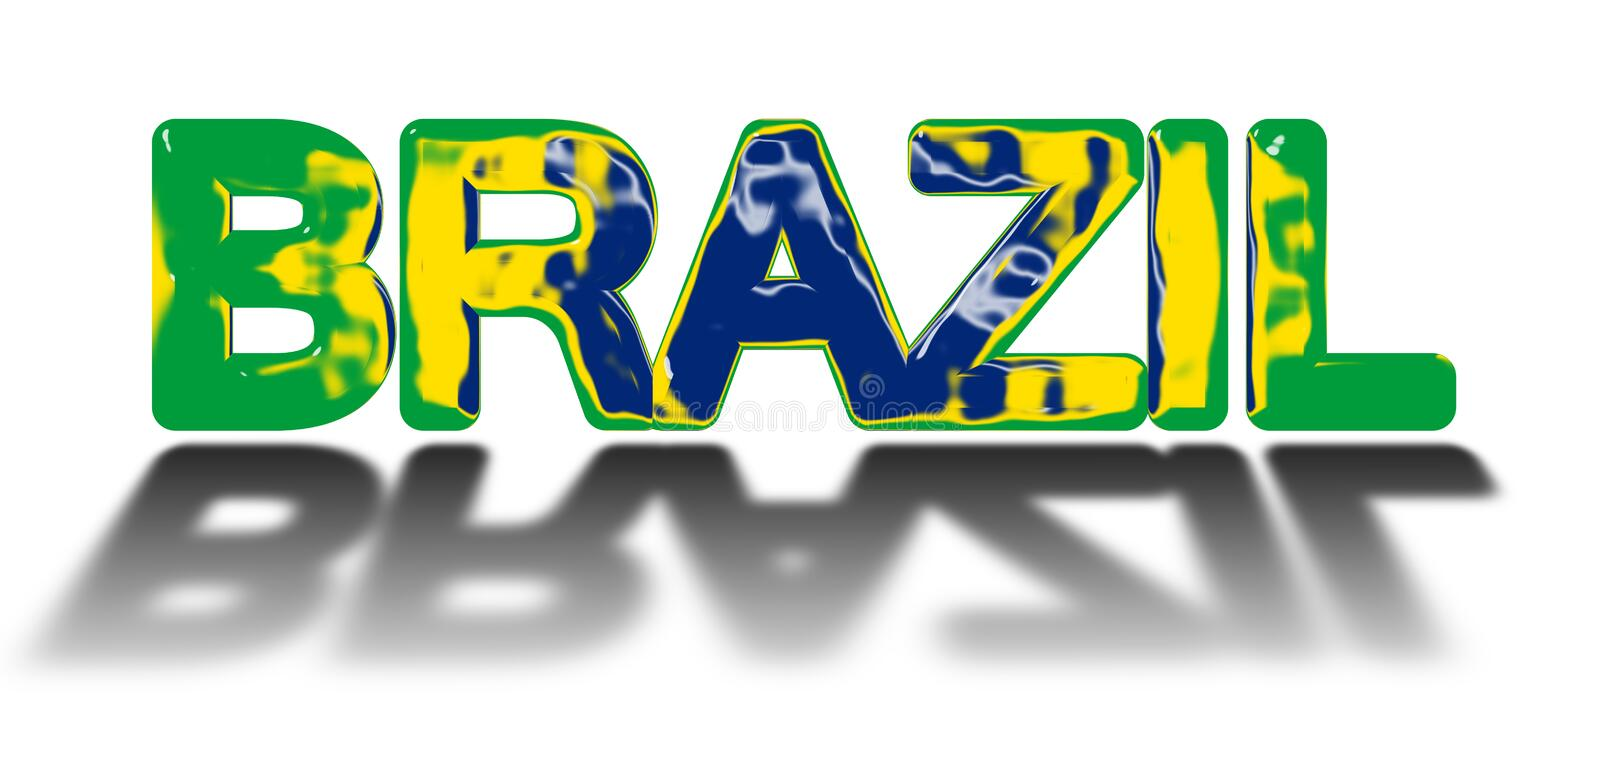 Brazil Country Concept Stock Illustration